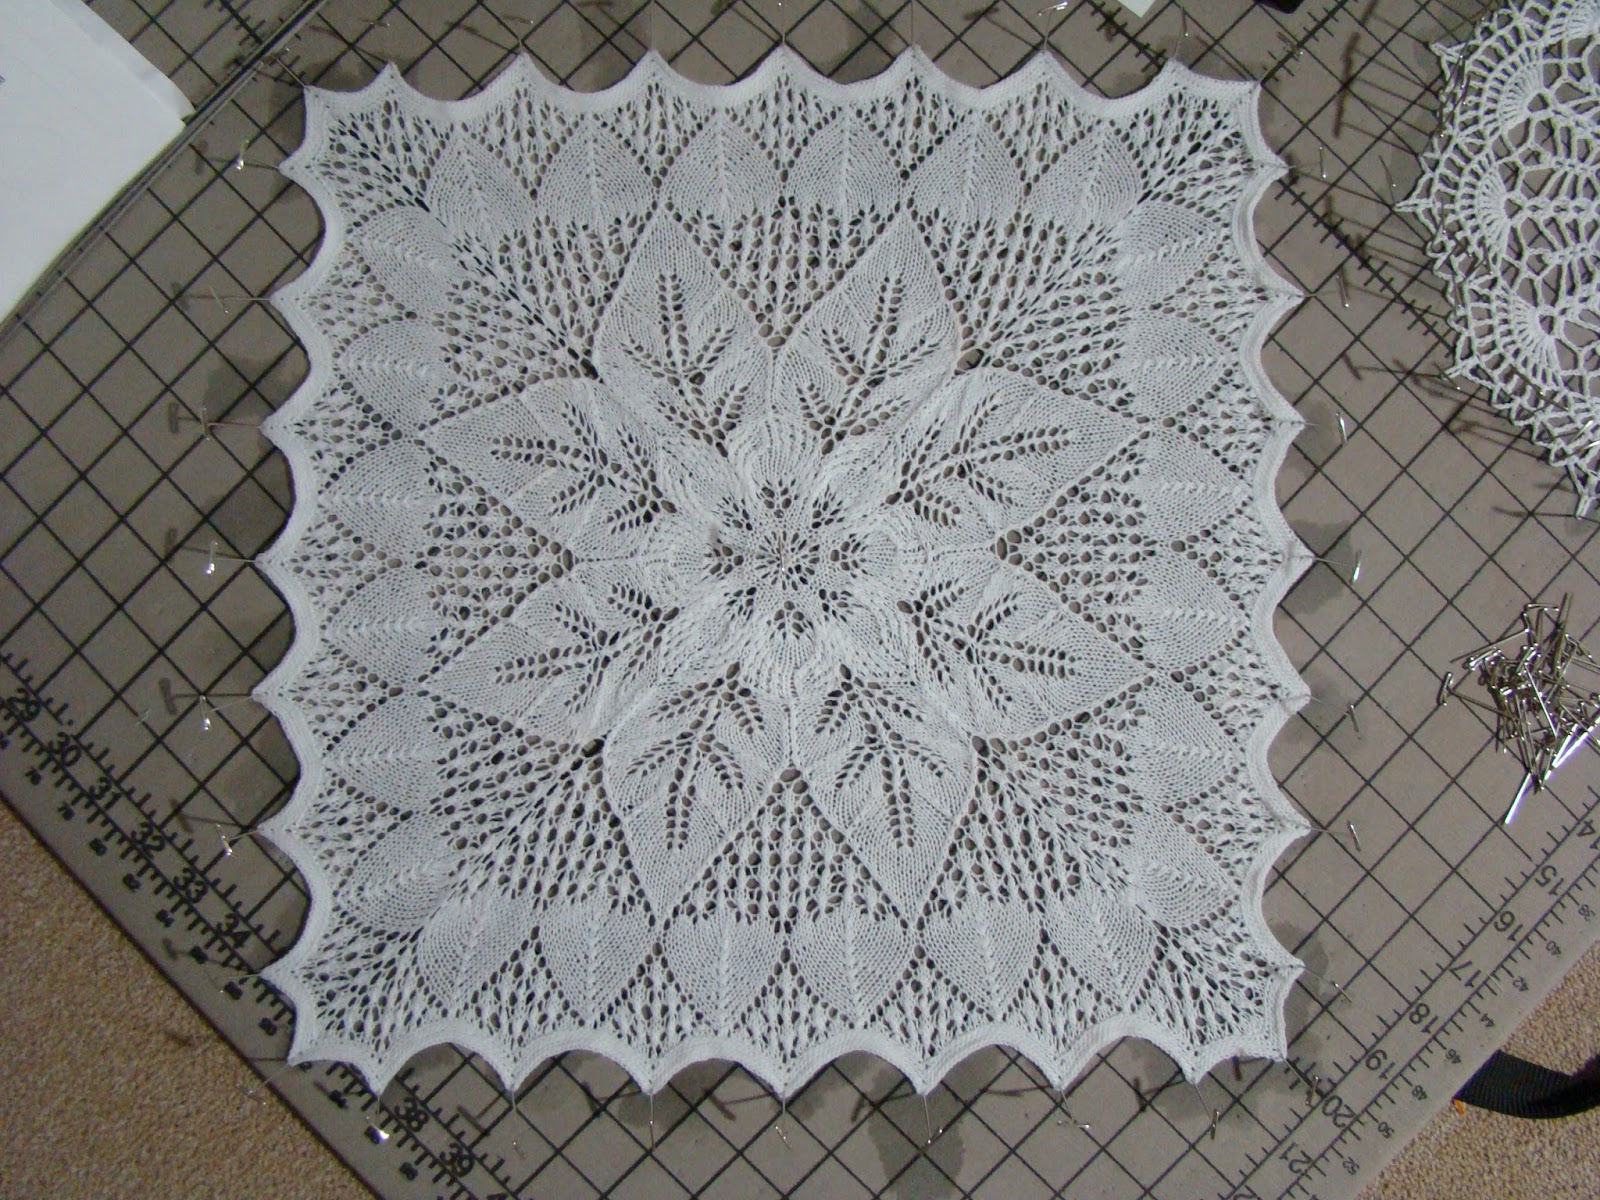 Funky Knitted Doily Patterns Crest - Blanket Knitting Pattern Ideas ...